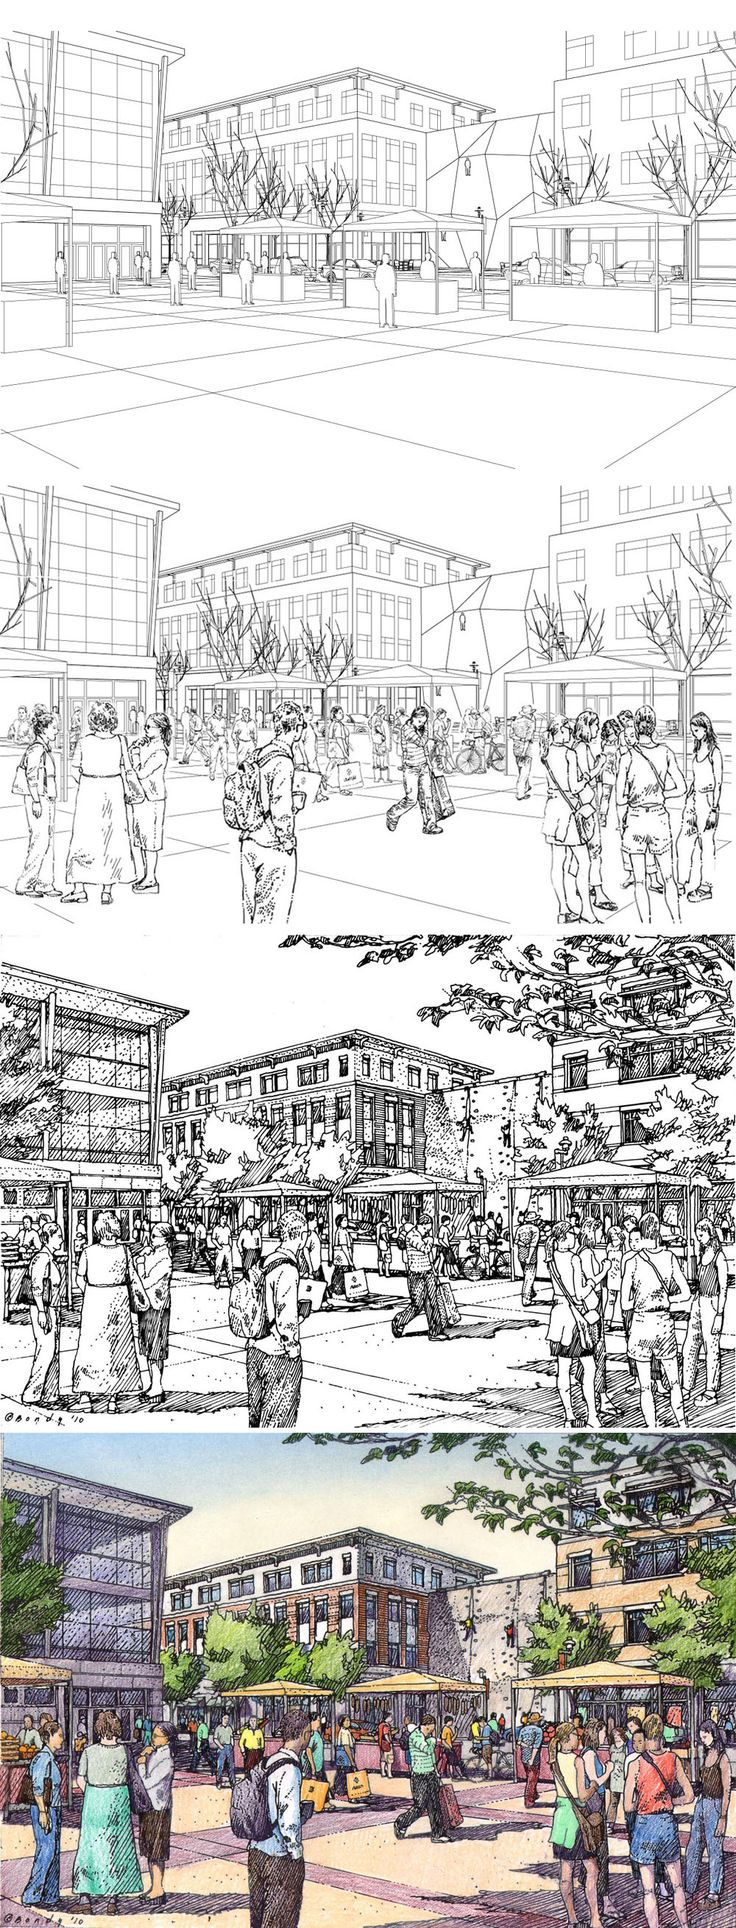 Rochester, NY.  URS Corporation.  Drawing Process.  Wireframe, Wireframe + Entourage, Inked Drawing, Color.  Rendering by Bruce Bondy, Bondy Studio